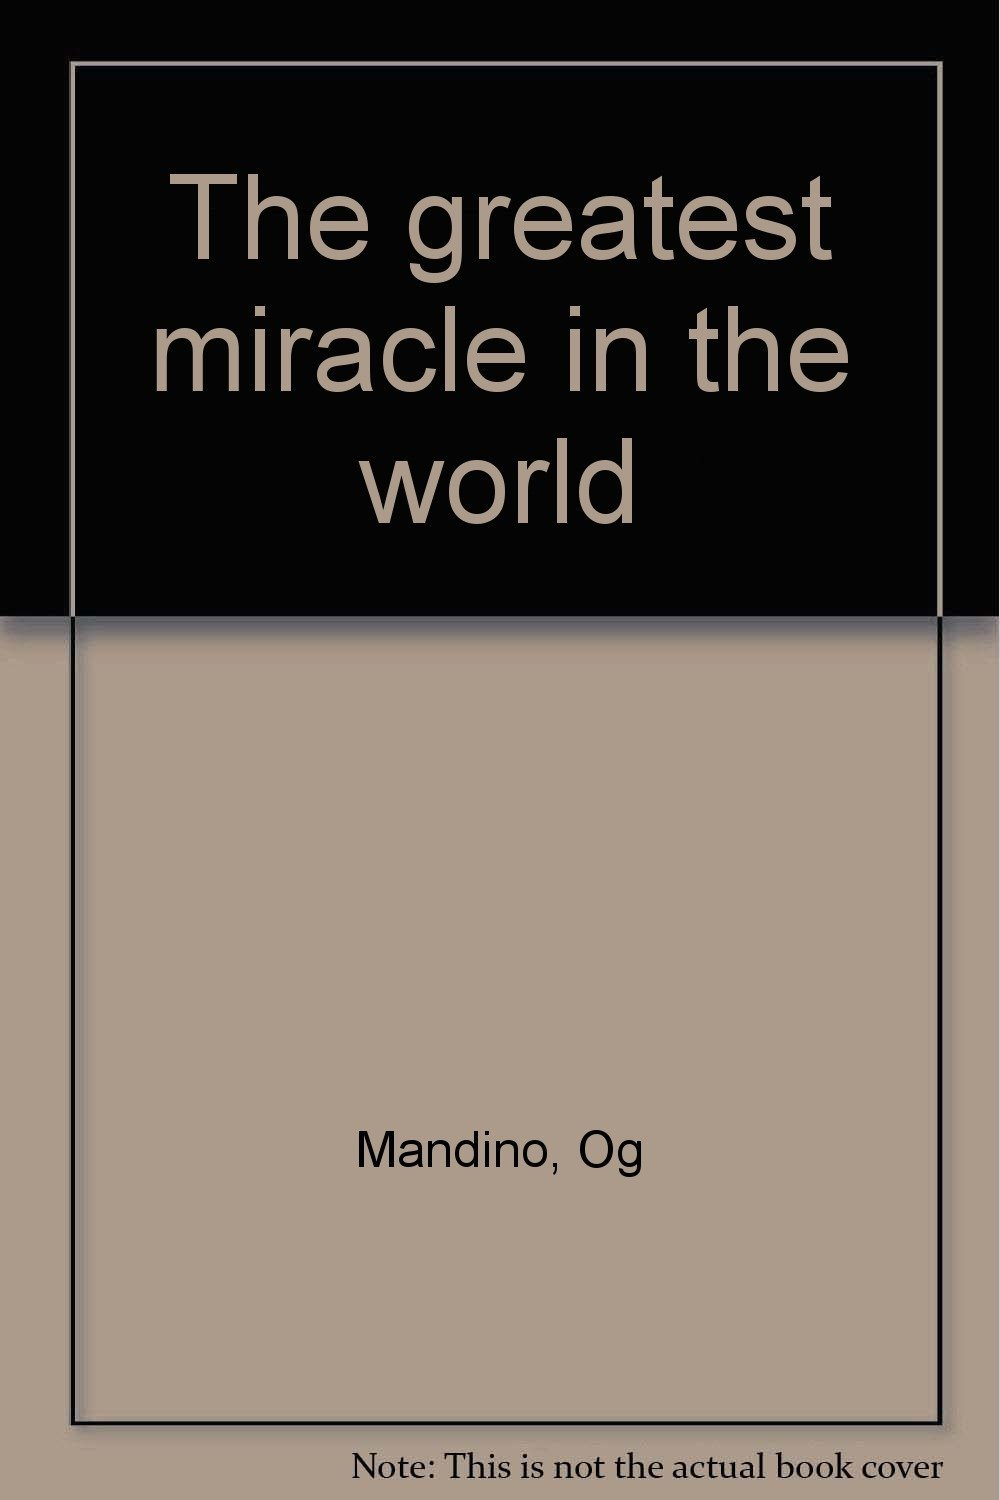 The greatest miracle in the world by Og Mandino